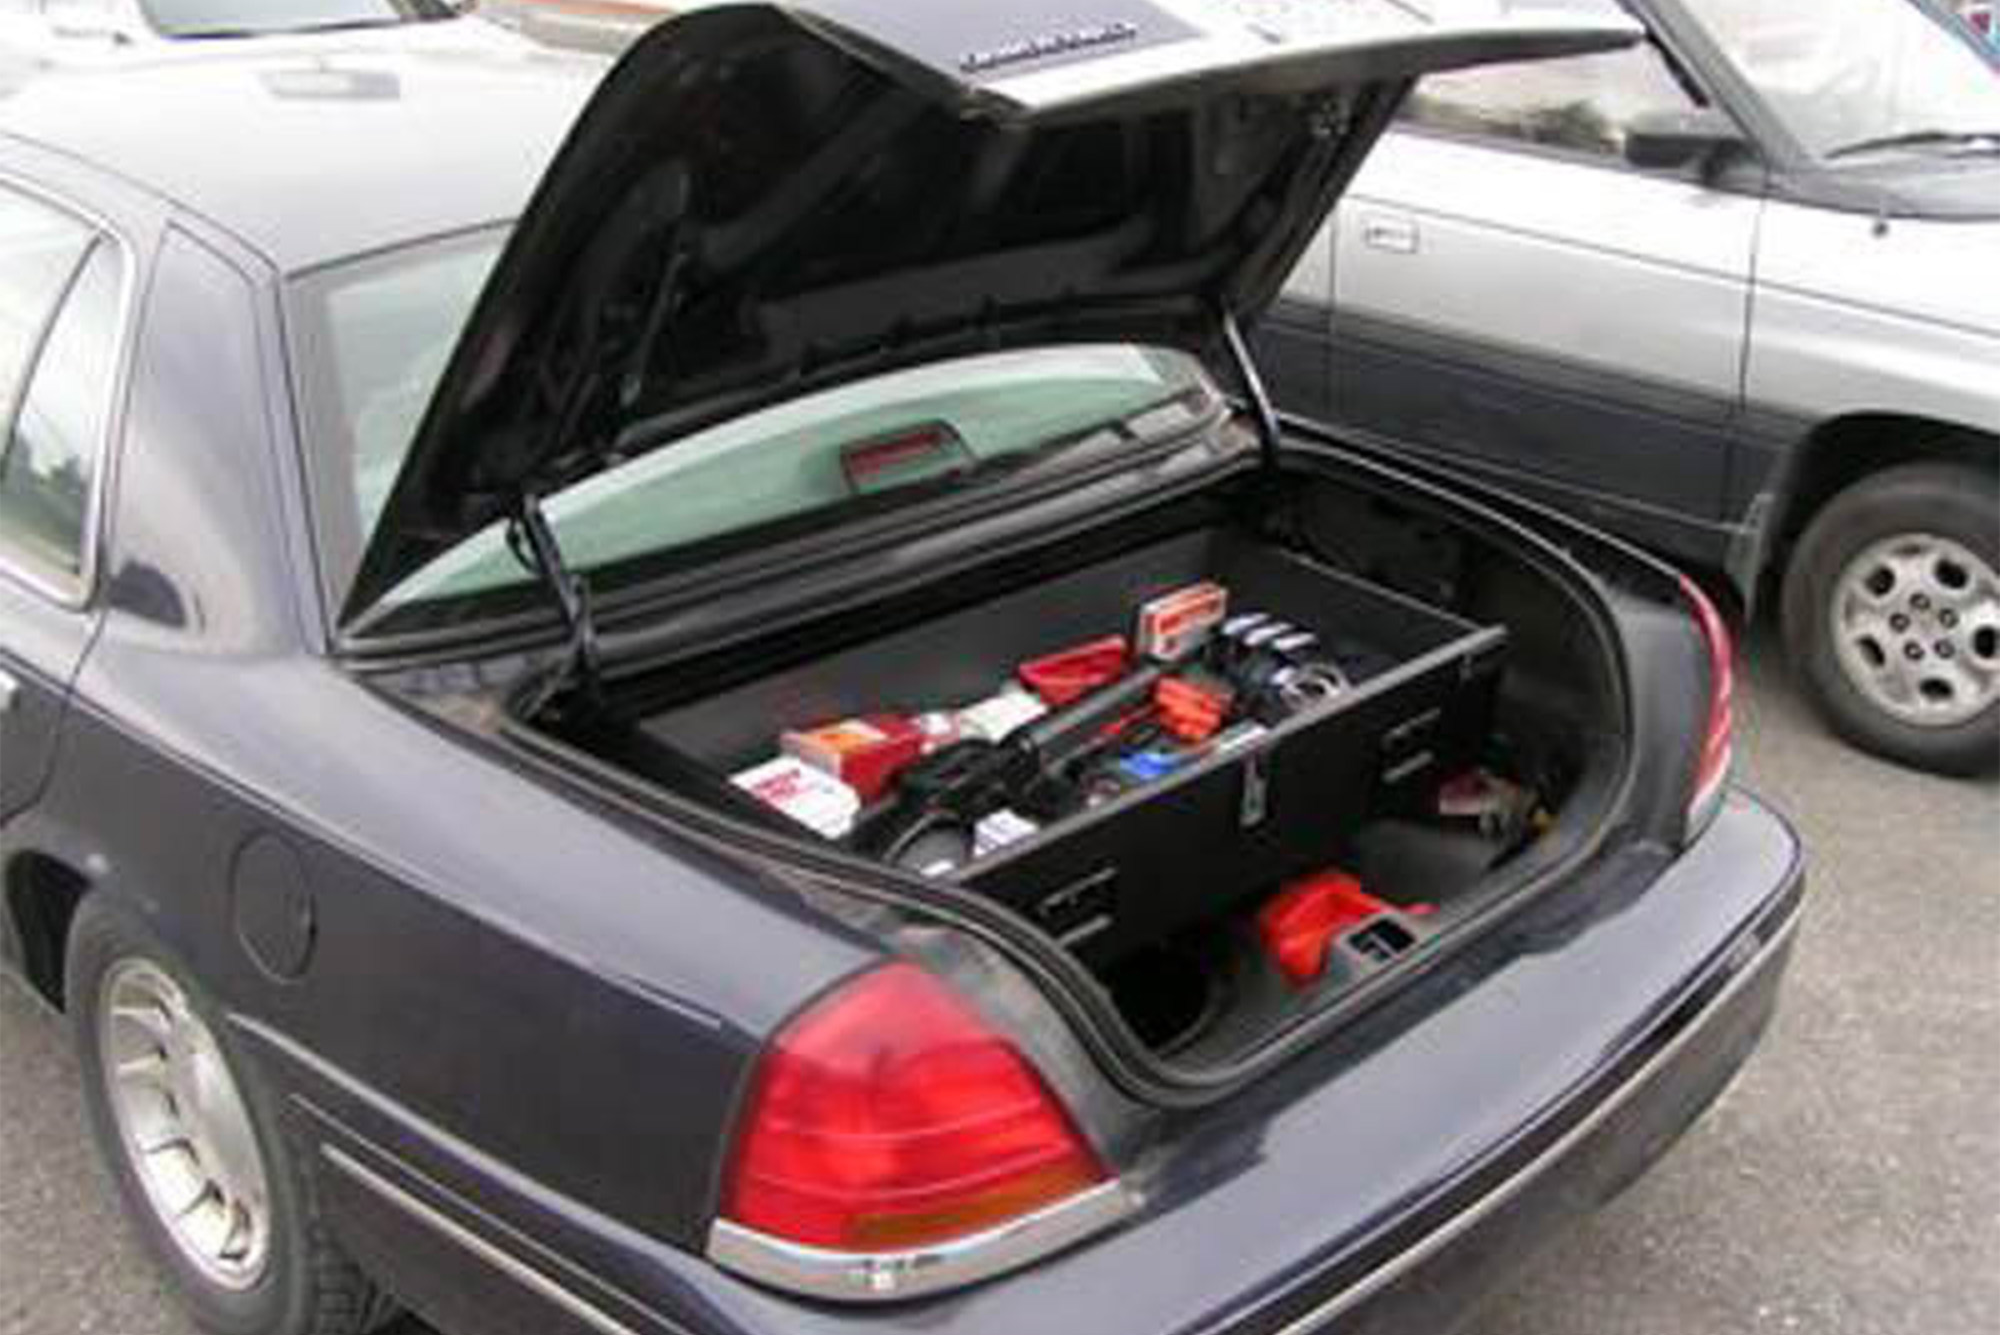 A navy Ford Crown Victoria police vehicle with a TruckVault in the trunk.